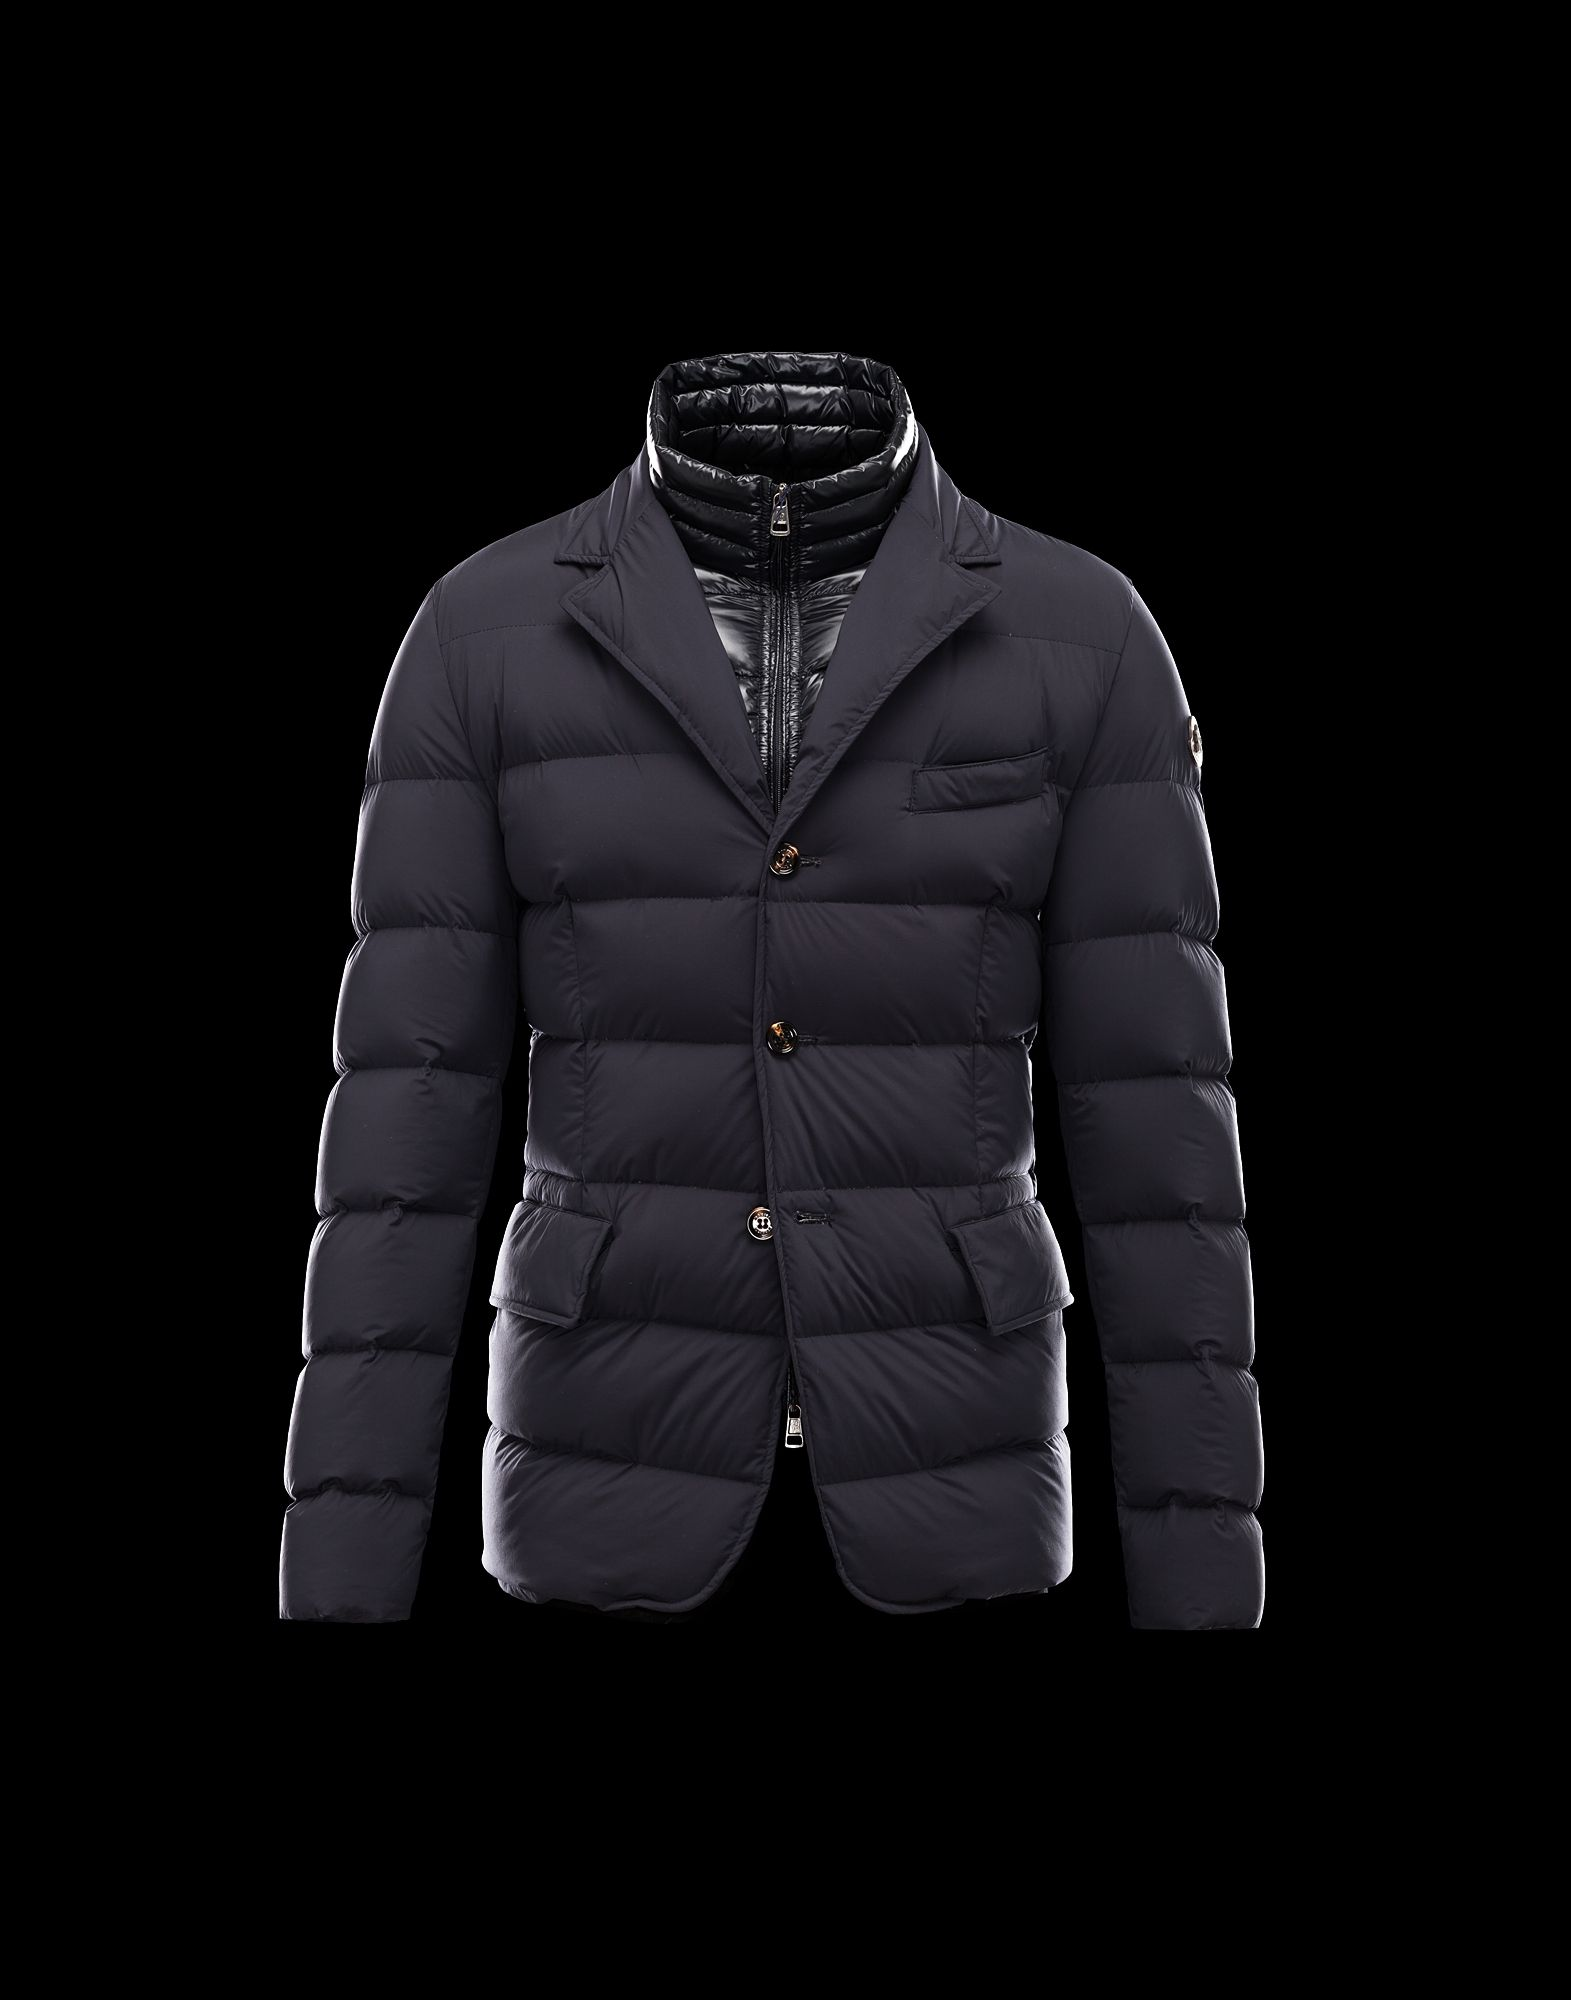 Moncler winter jacket ROUILLAC winter jacket